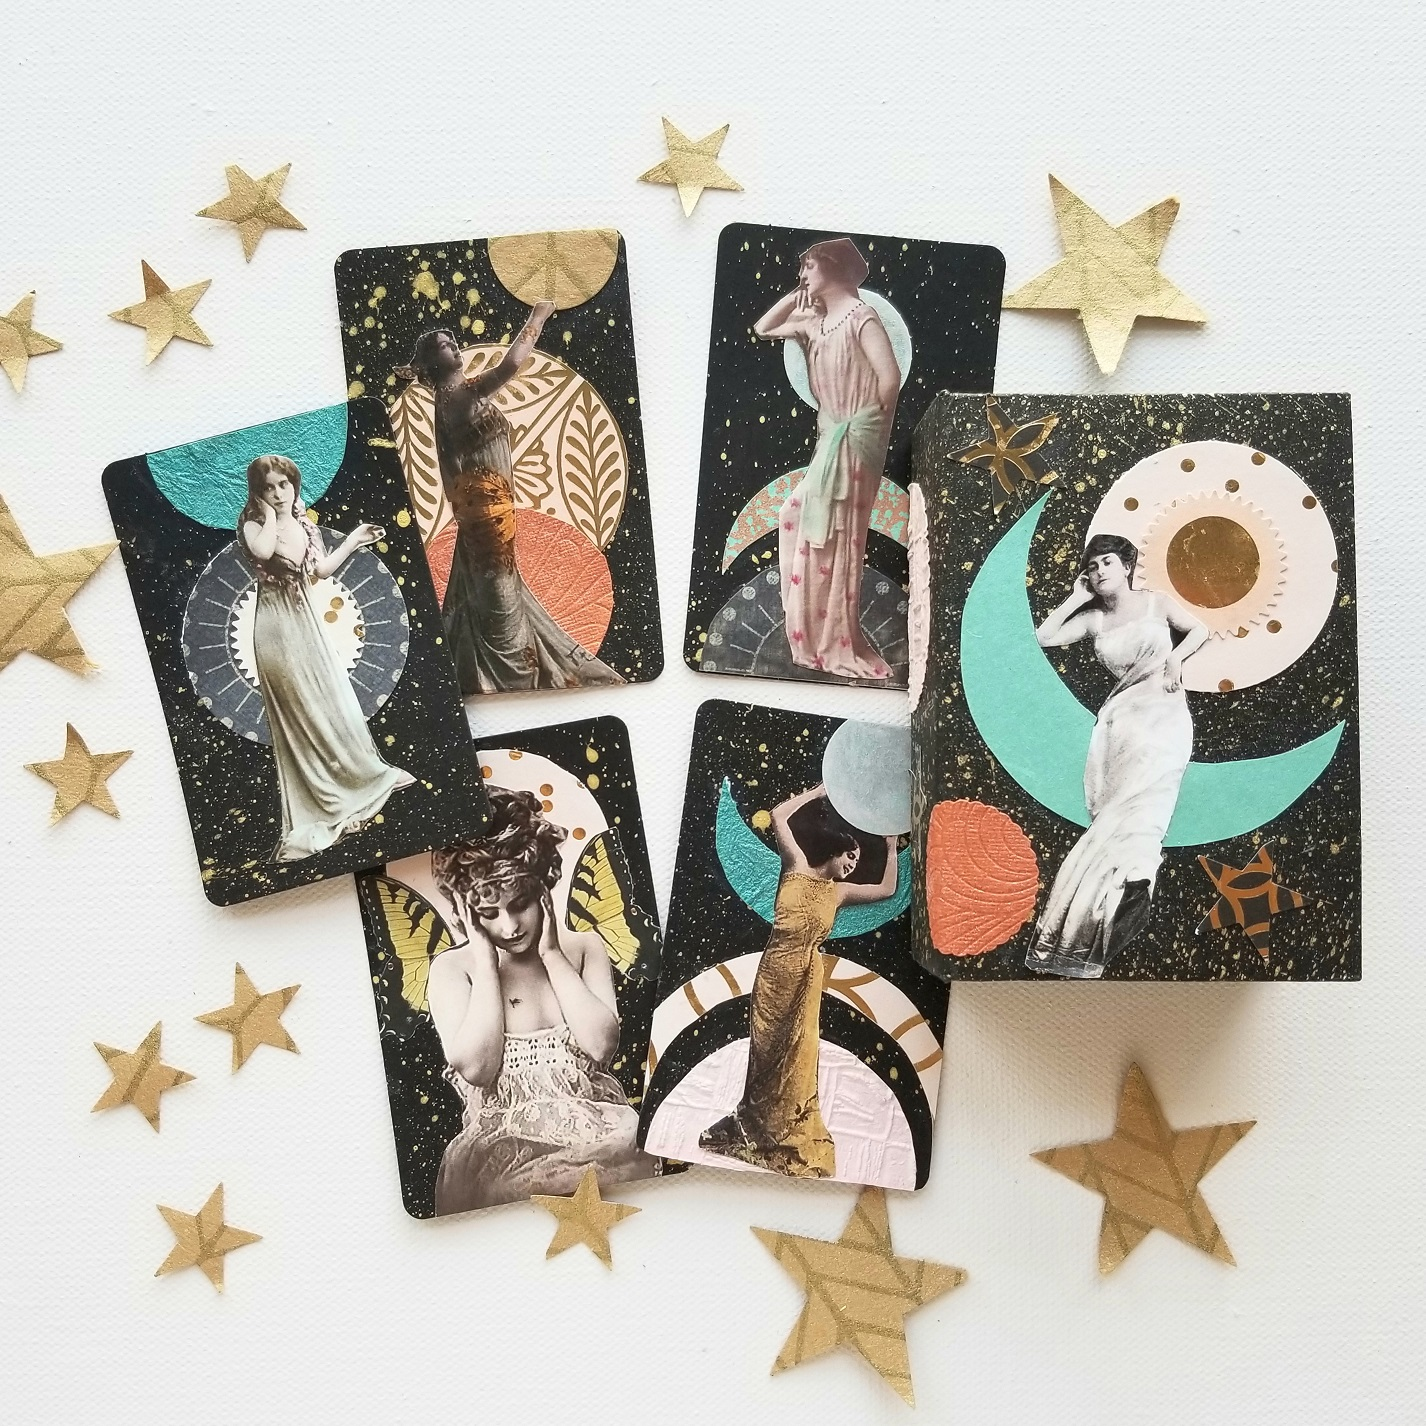 Galaxy Goddesses FortuneART Cards mixed media class by Kellee Wynne Studios (11)small.jpg